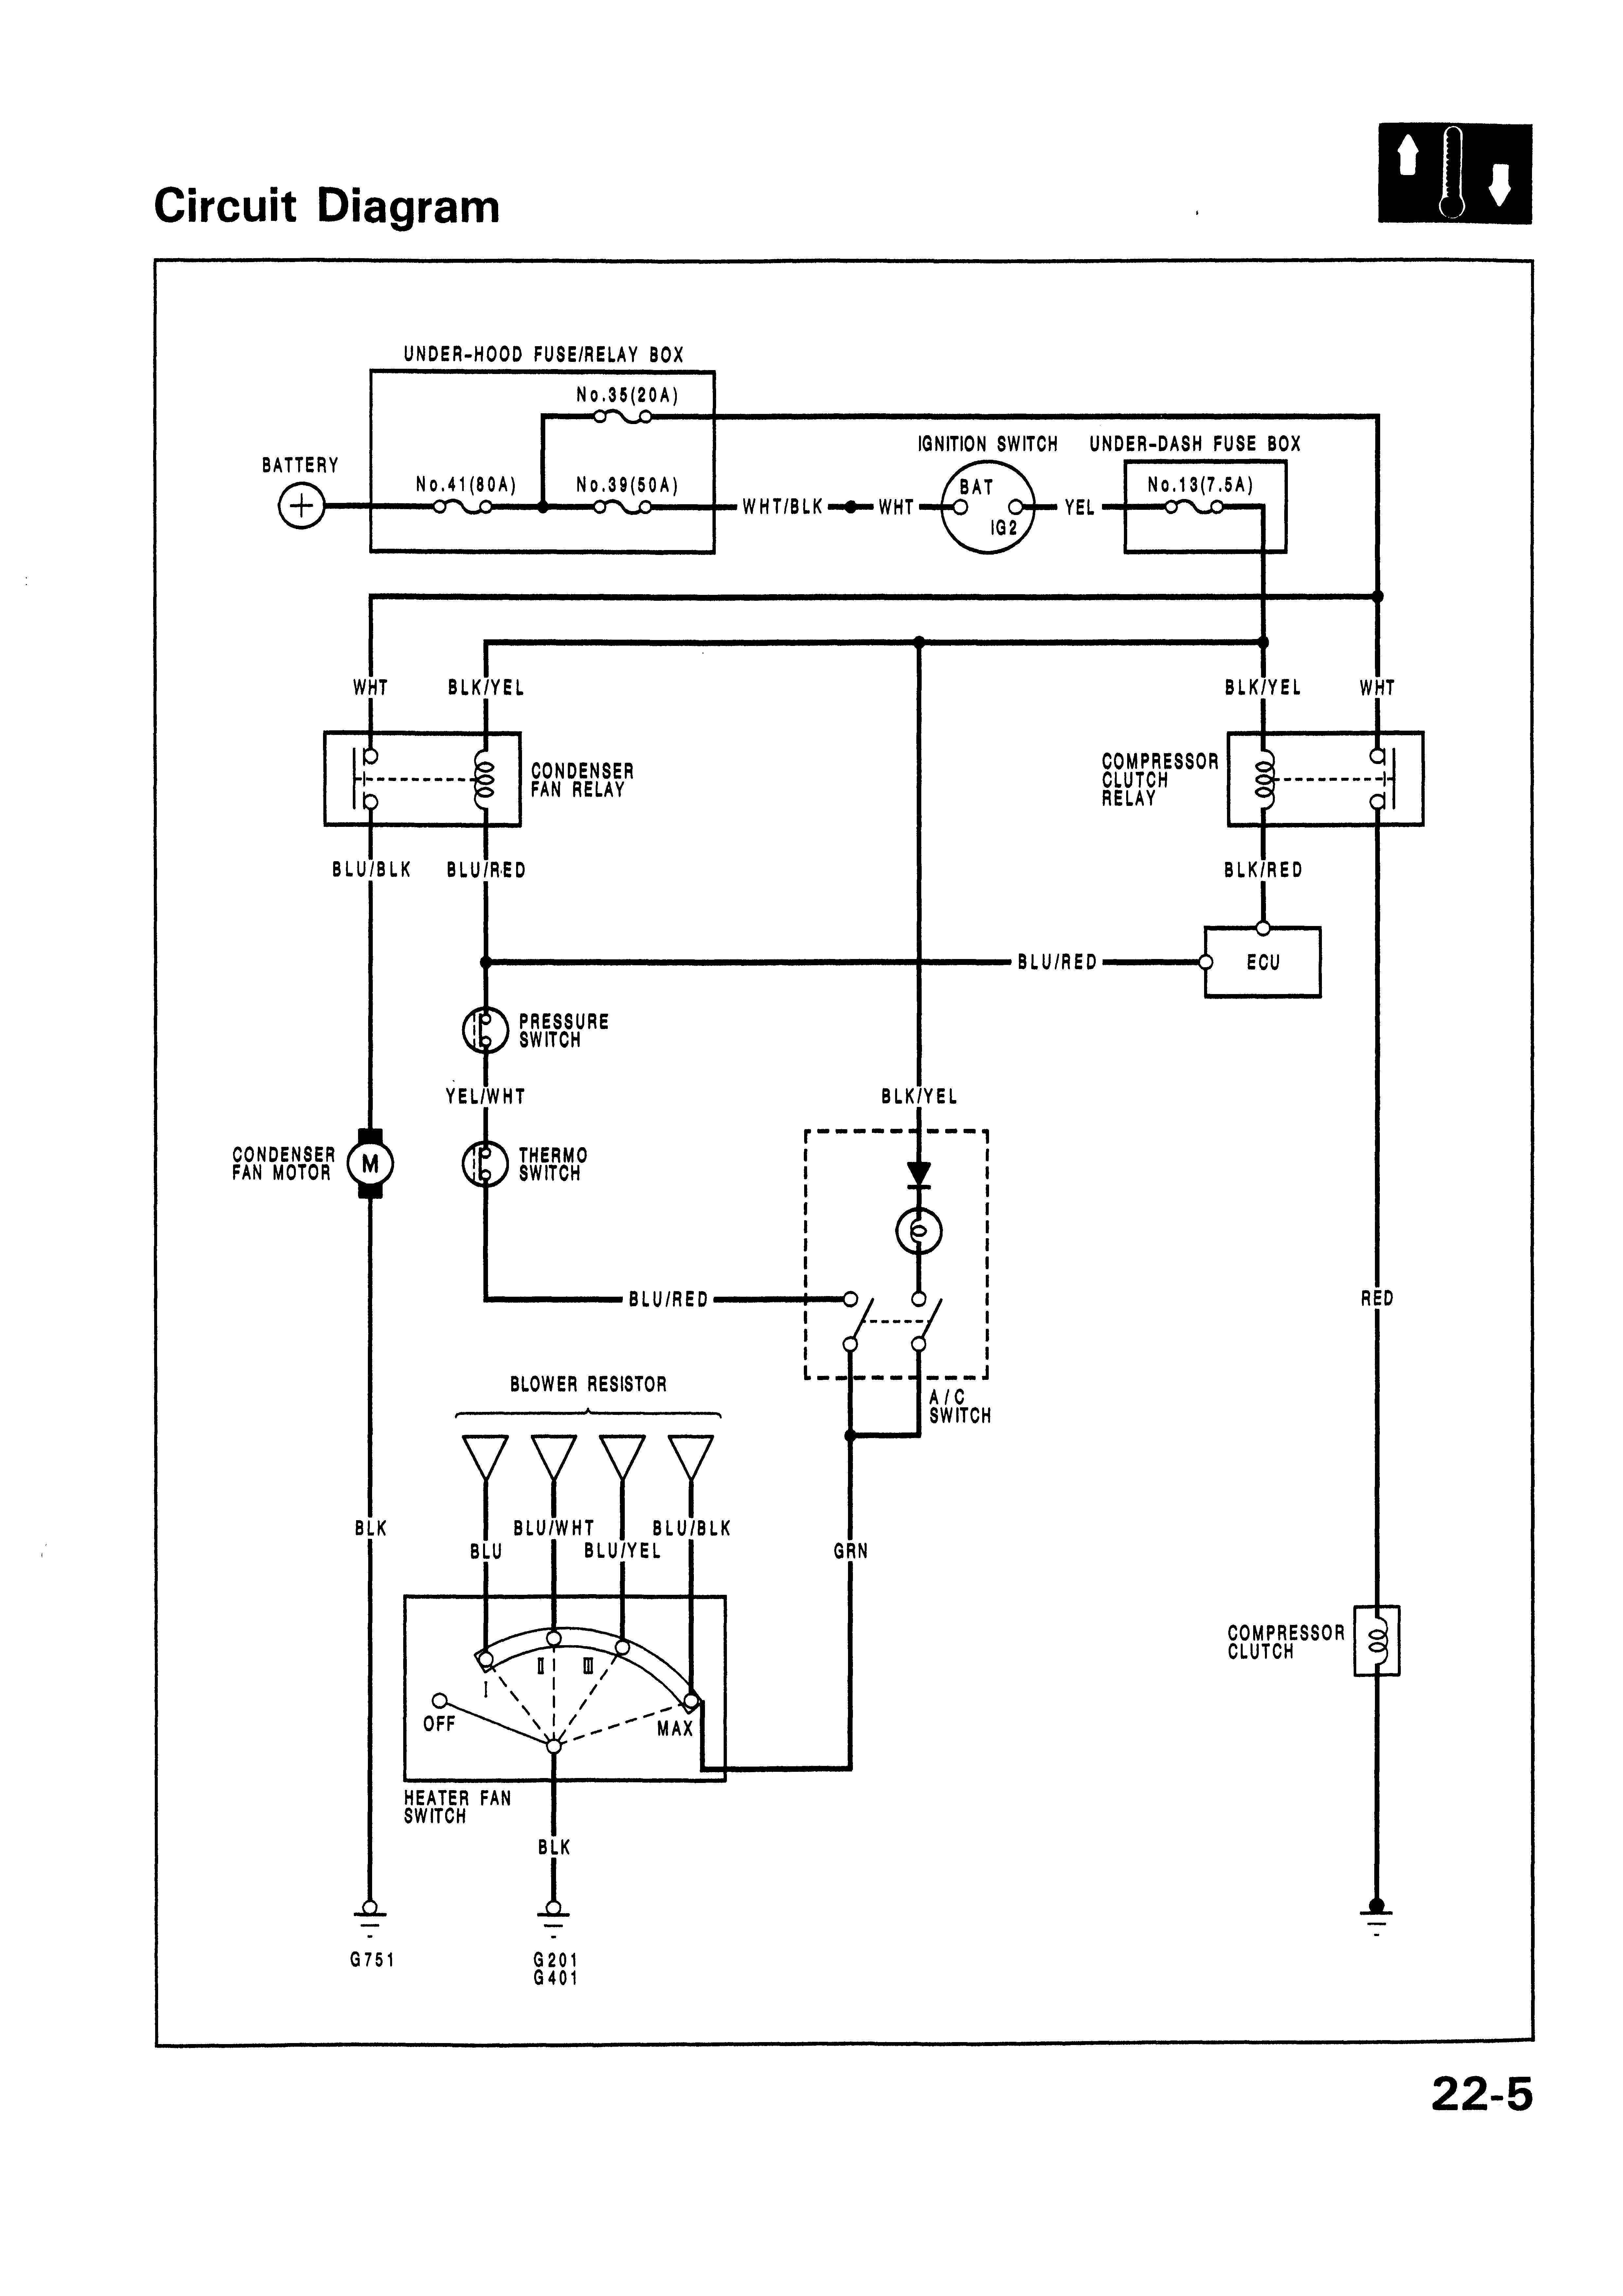 New Types Of Wirings Diagram Wiringdiagram Diagramming Diagramm Visuals Visualisation Graphical Check More At Https Diagram Circuit Diagram Ac Wiring